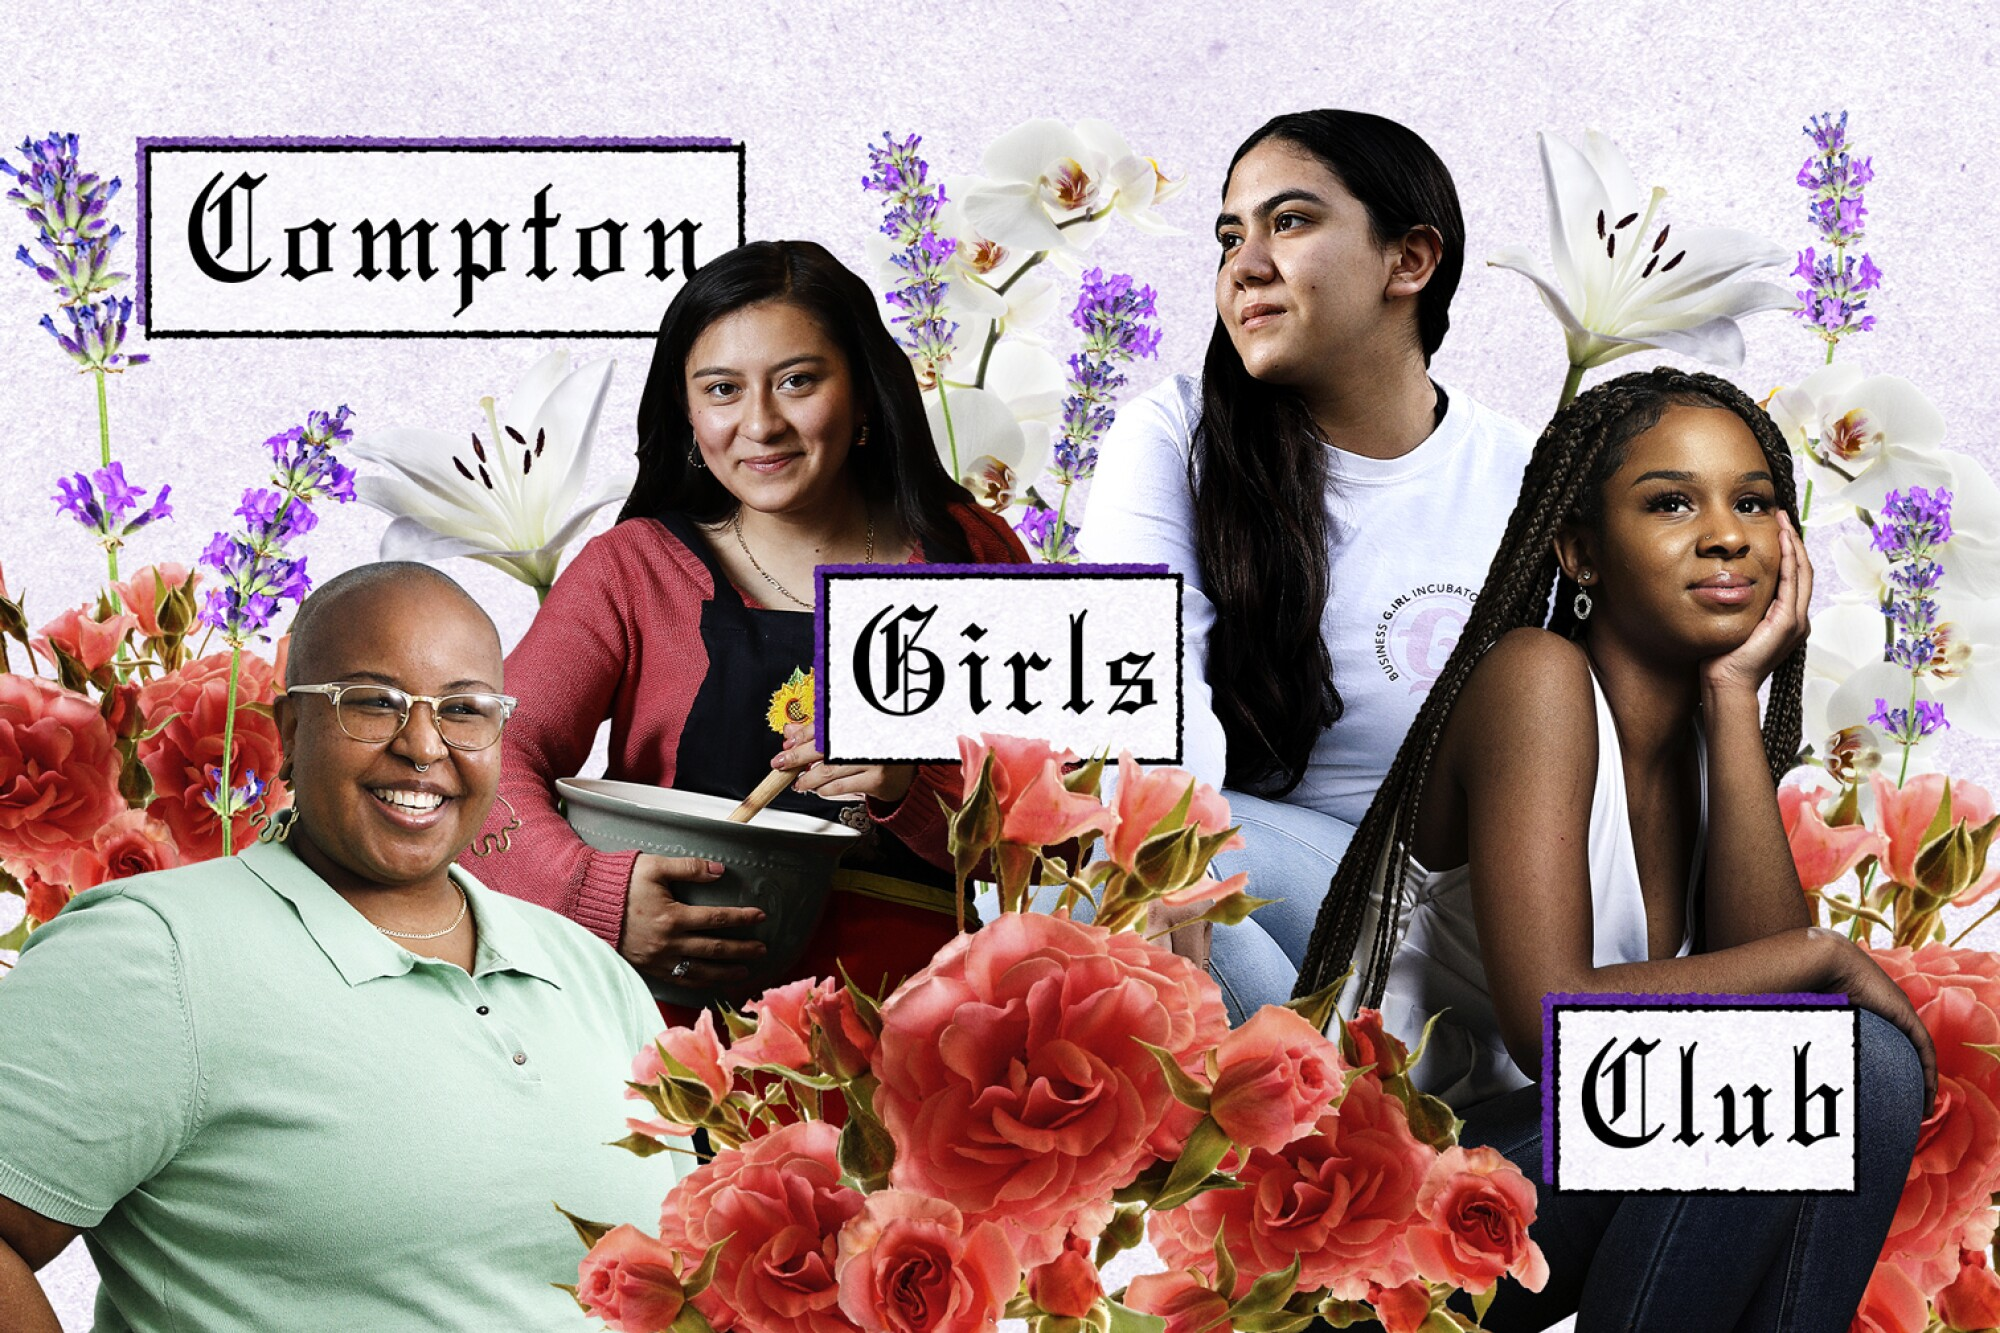 An illustration spotlighting the founder and three members of the Compton Girls Club.